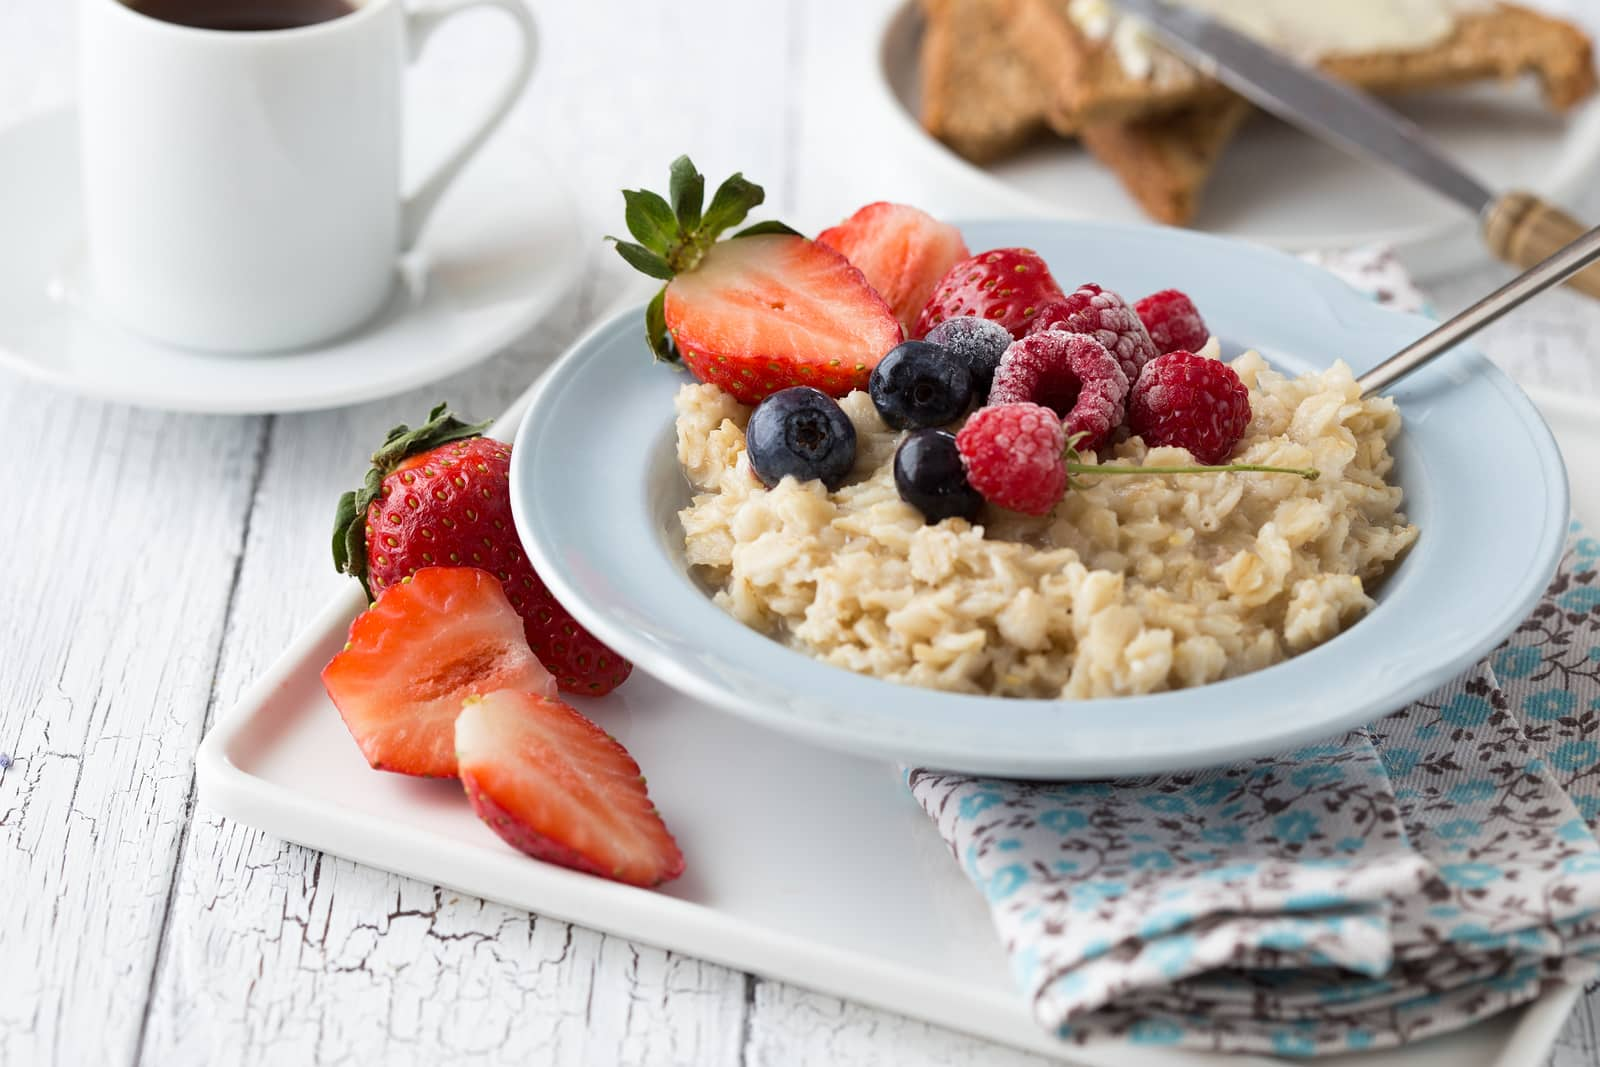 Go for satiety-promoting foods, like oatmeal, to combat perimenopause weight gain and belly fat.